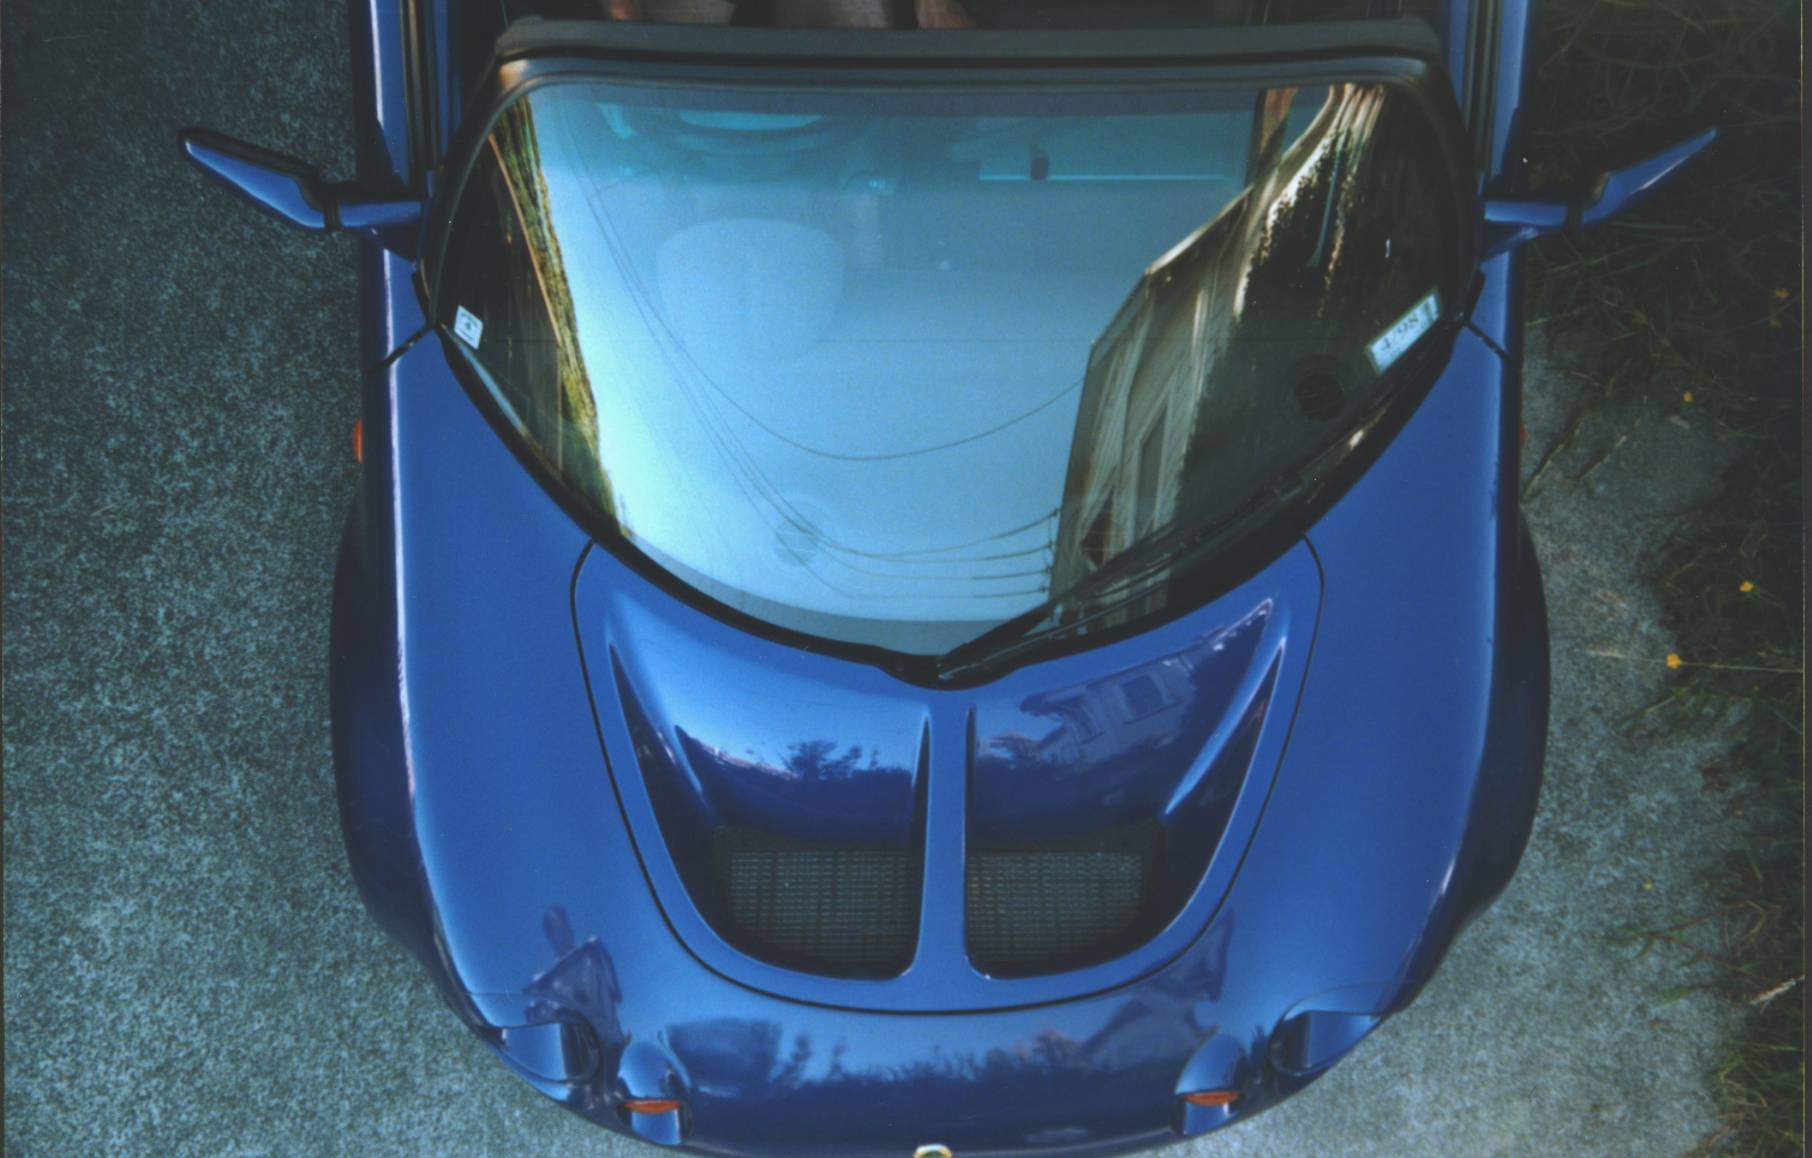 Magnets For Cars >> bork.ca : pics/cars/lotus/elise/gallery/front-overhead.jpg